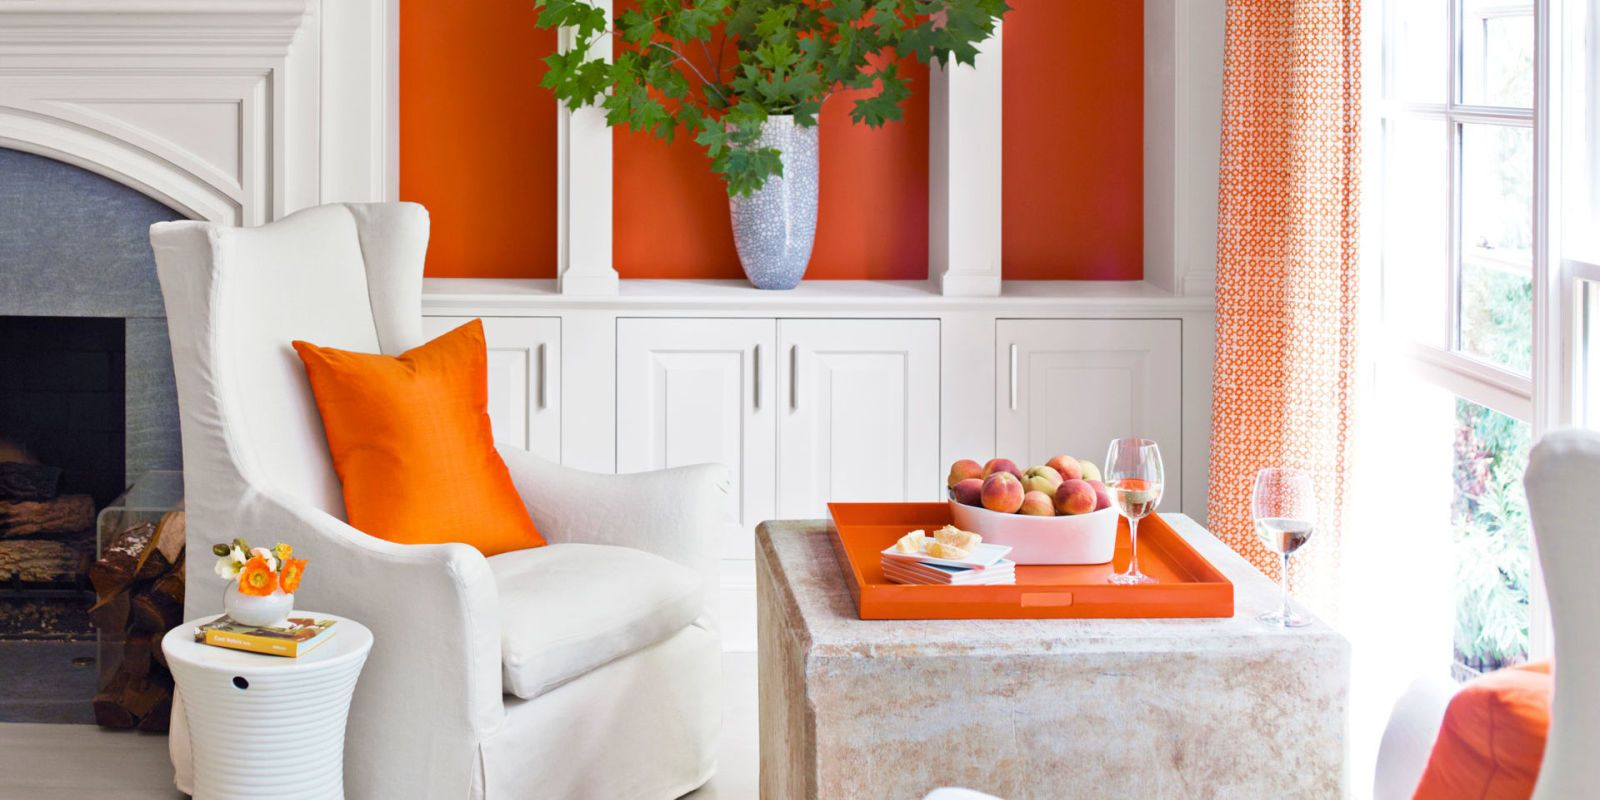 An Atlanta House with Bursts of Color